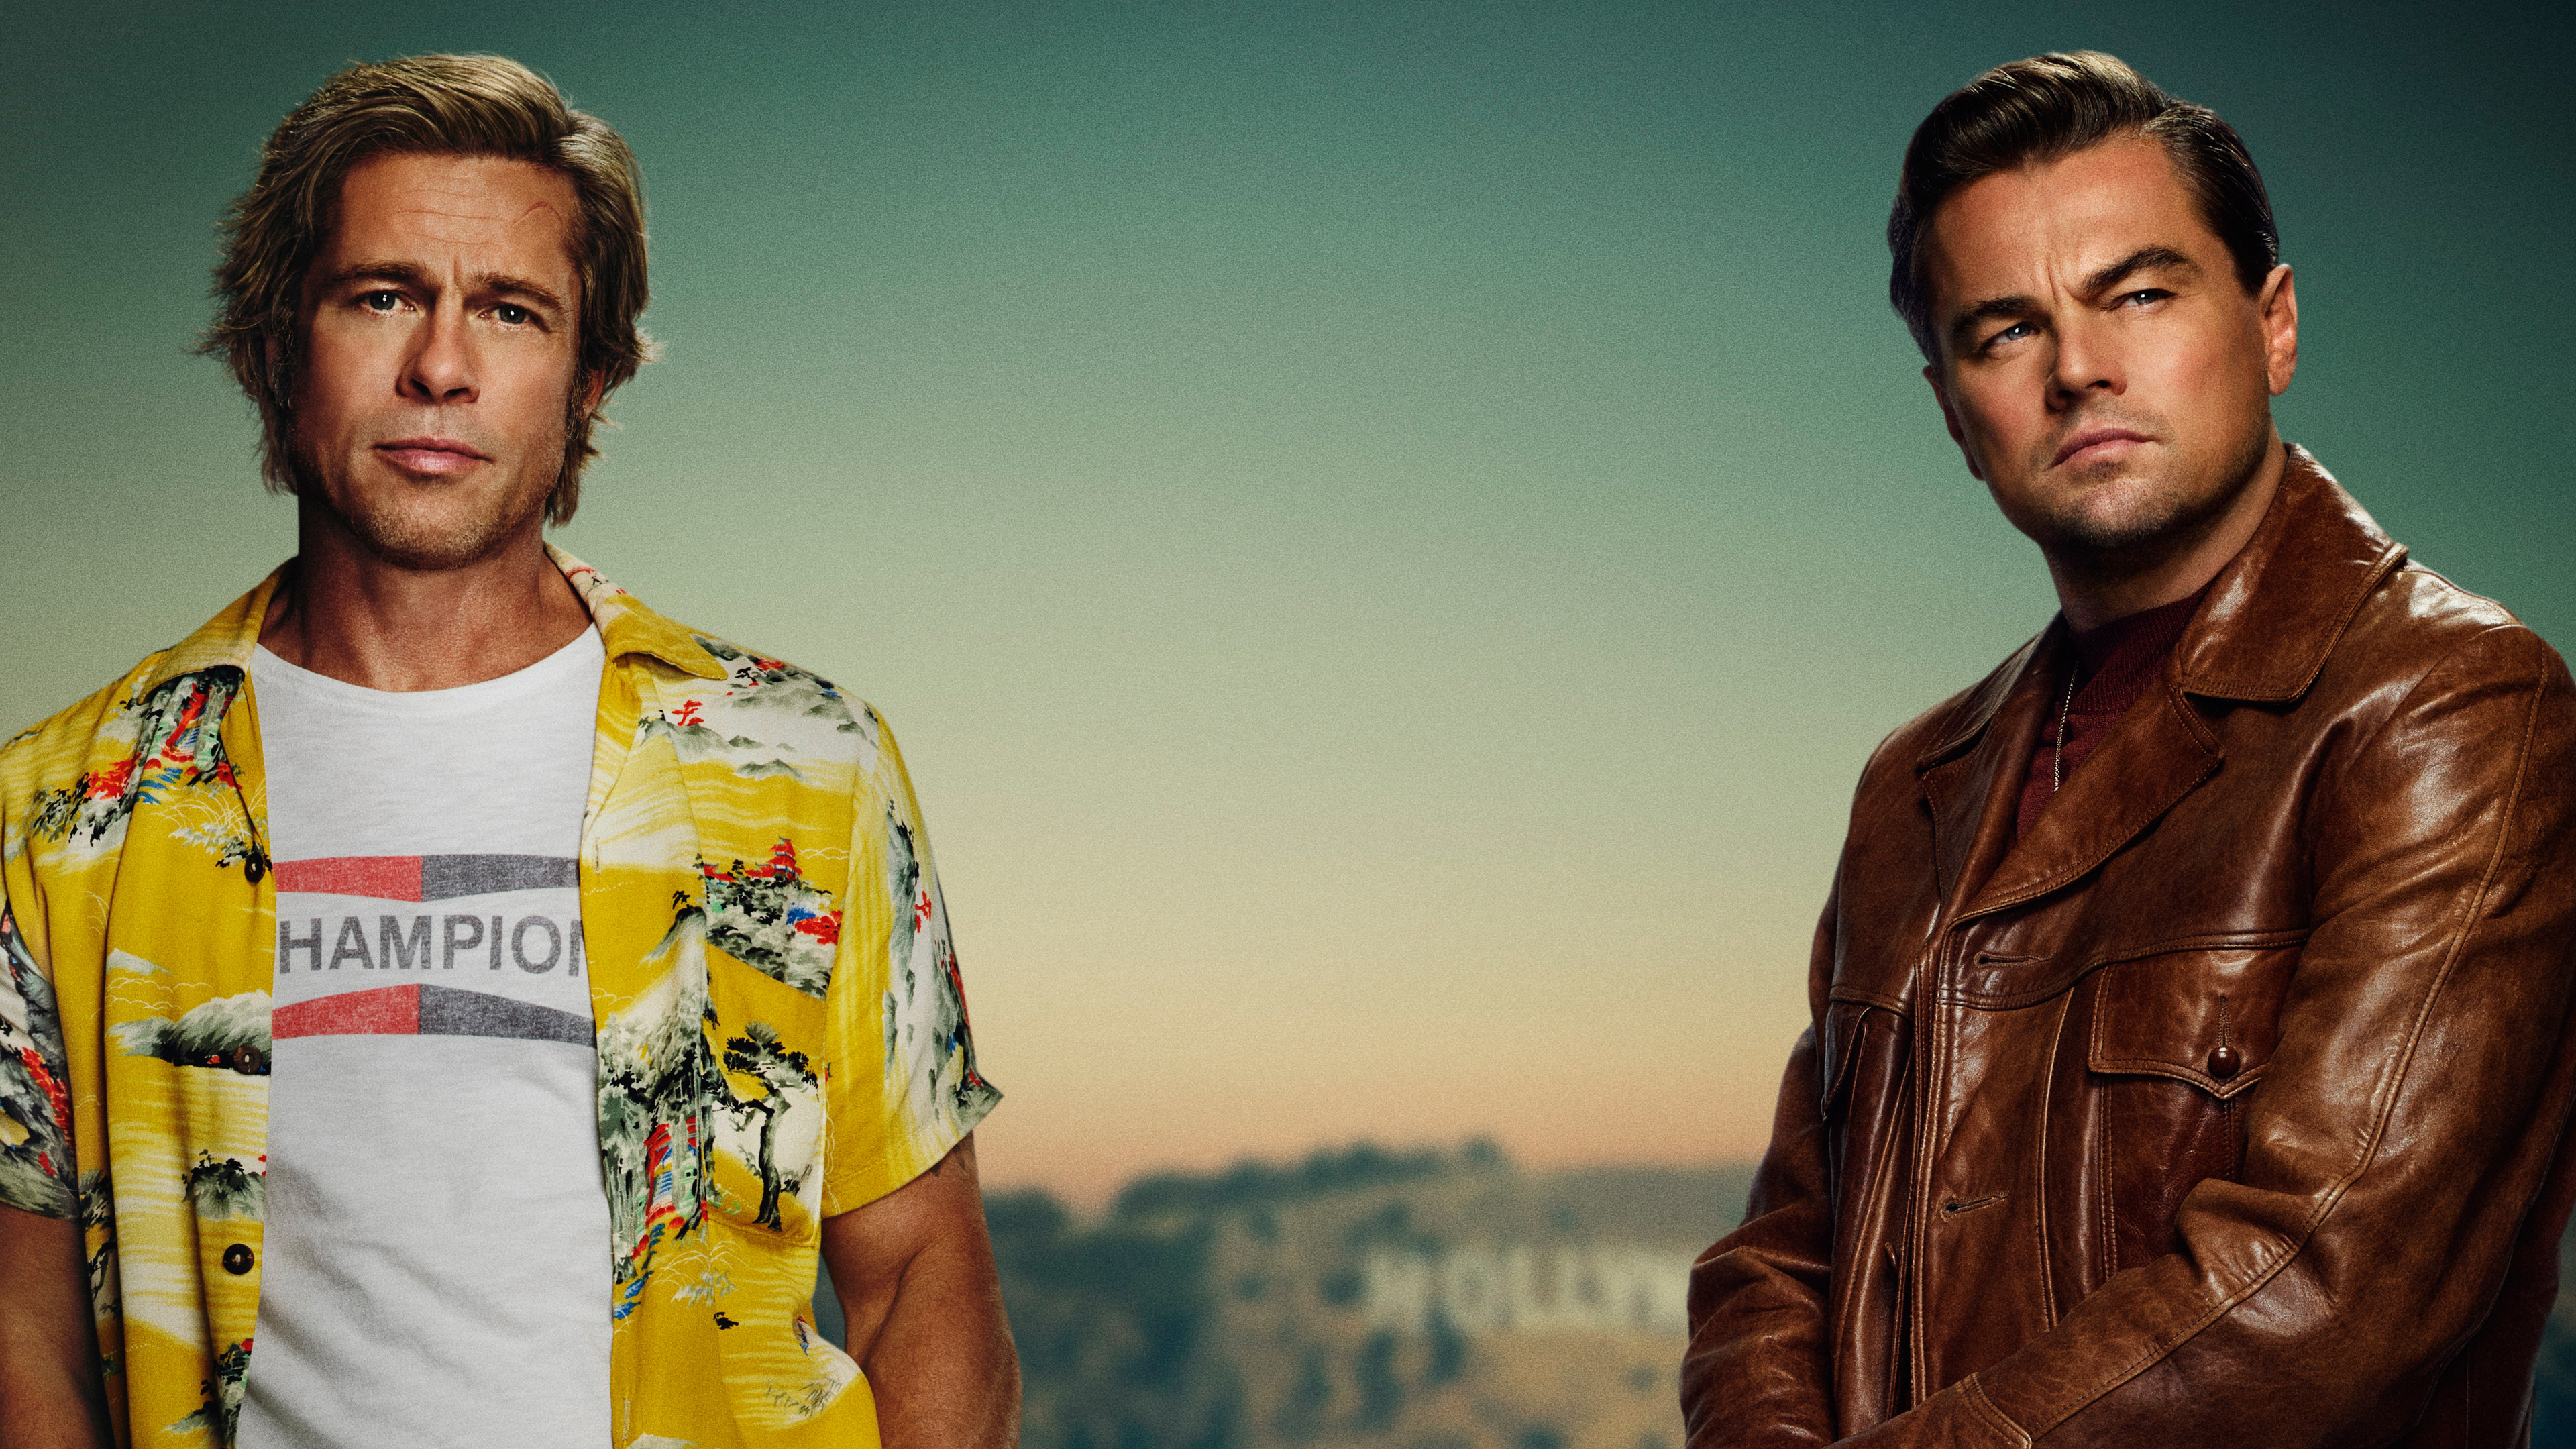 once upon a time in hollywood 2019 4k 1555208408 - Once Upon A Time In Hollywood 2019 4k - once upon a time in hollywood wallpapers, movies wallpapers, leonardo dicaprio wallpapers, hd-wallpapers, brad pitt wallpapers, 4k-wallpapers, 2019 movies wallpapers